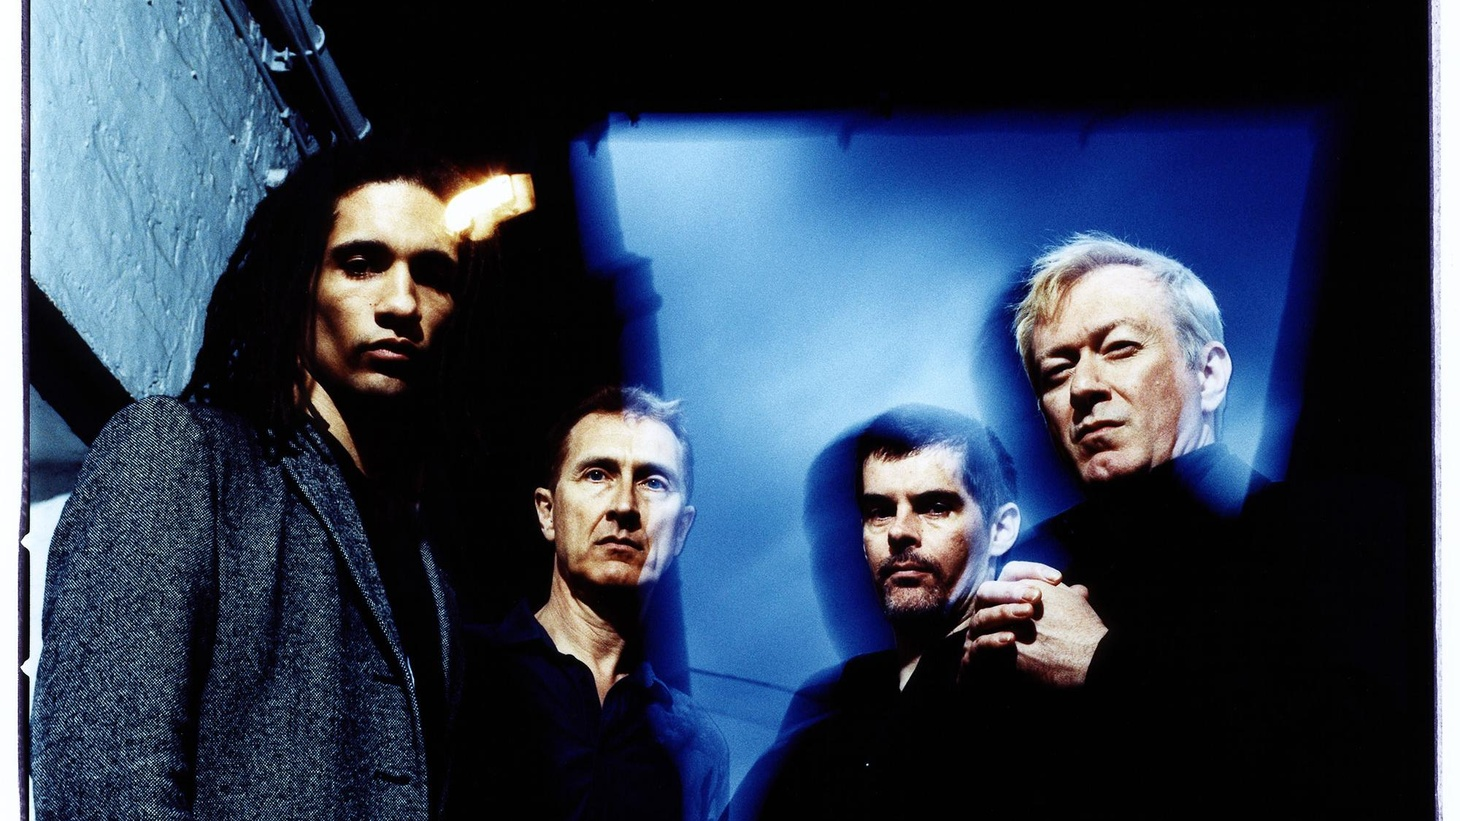 Gang of Four defined the early English post-punk era and have inspired countless bands to this day. After fifteen long years, they've recorded a brand new album which they will perform, along with some of their classics, for Morning Becomes Eclectic listeners at 11:15am.